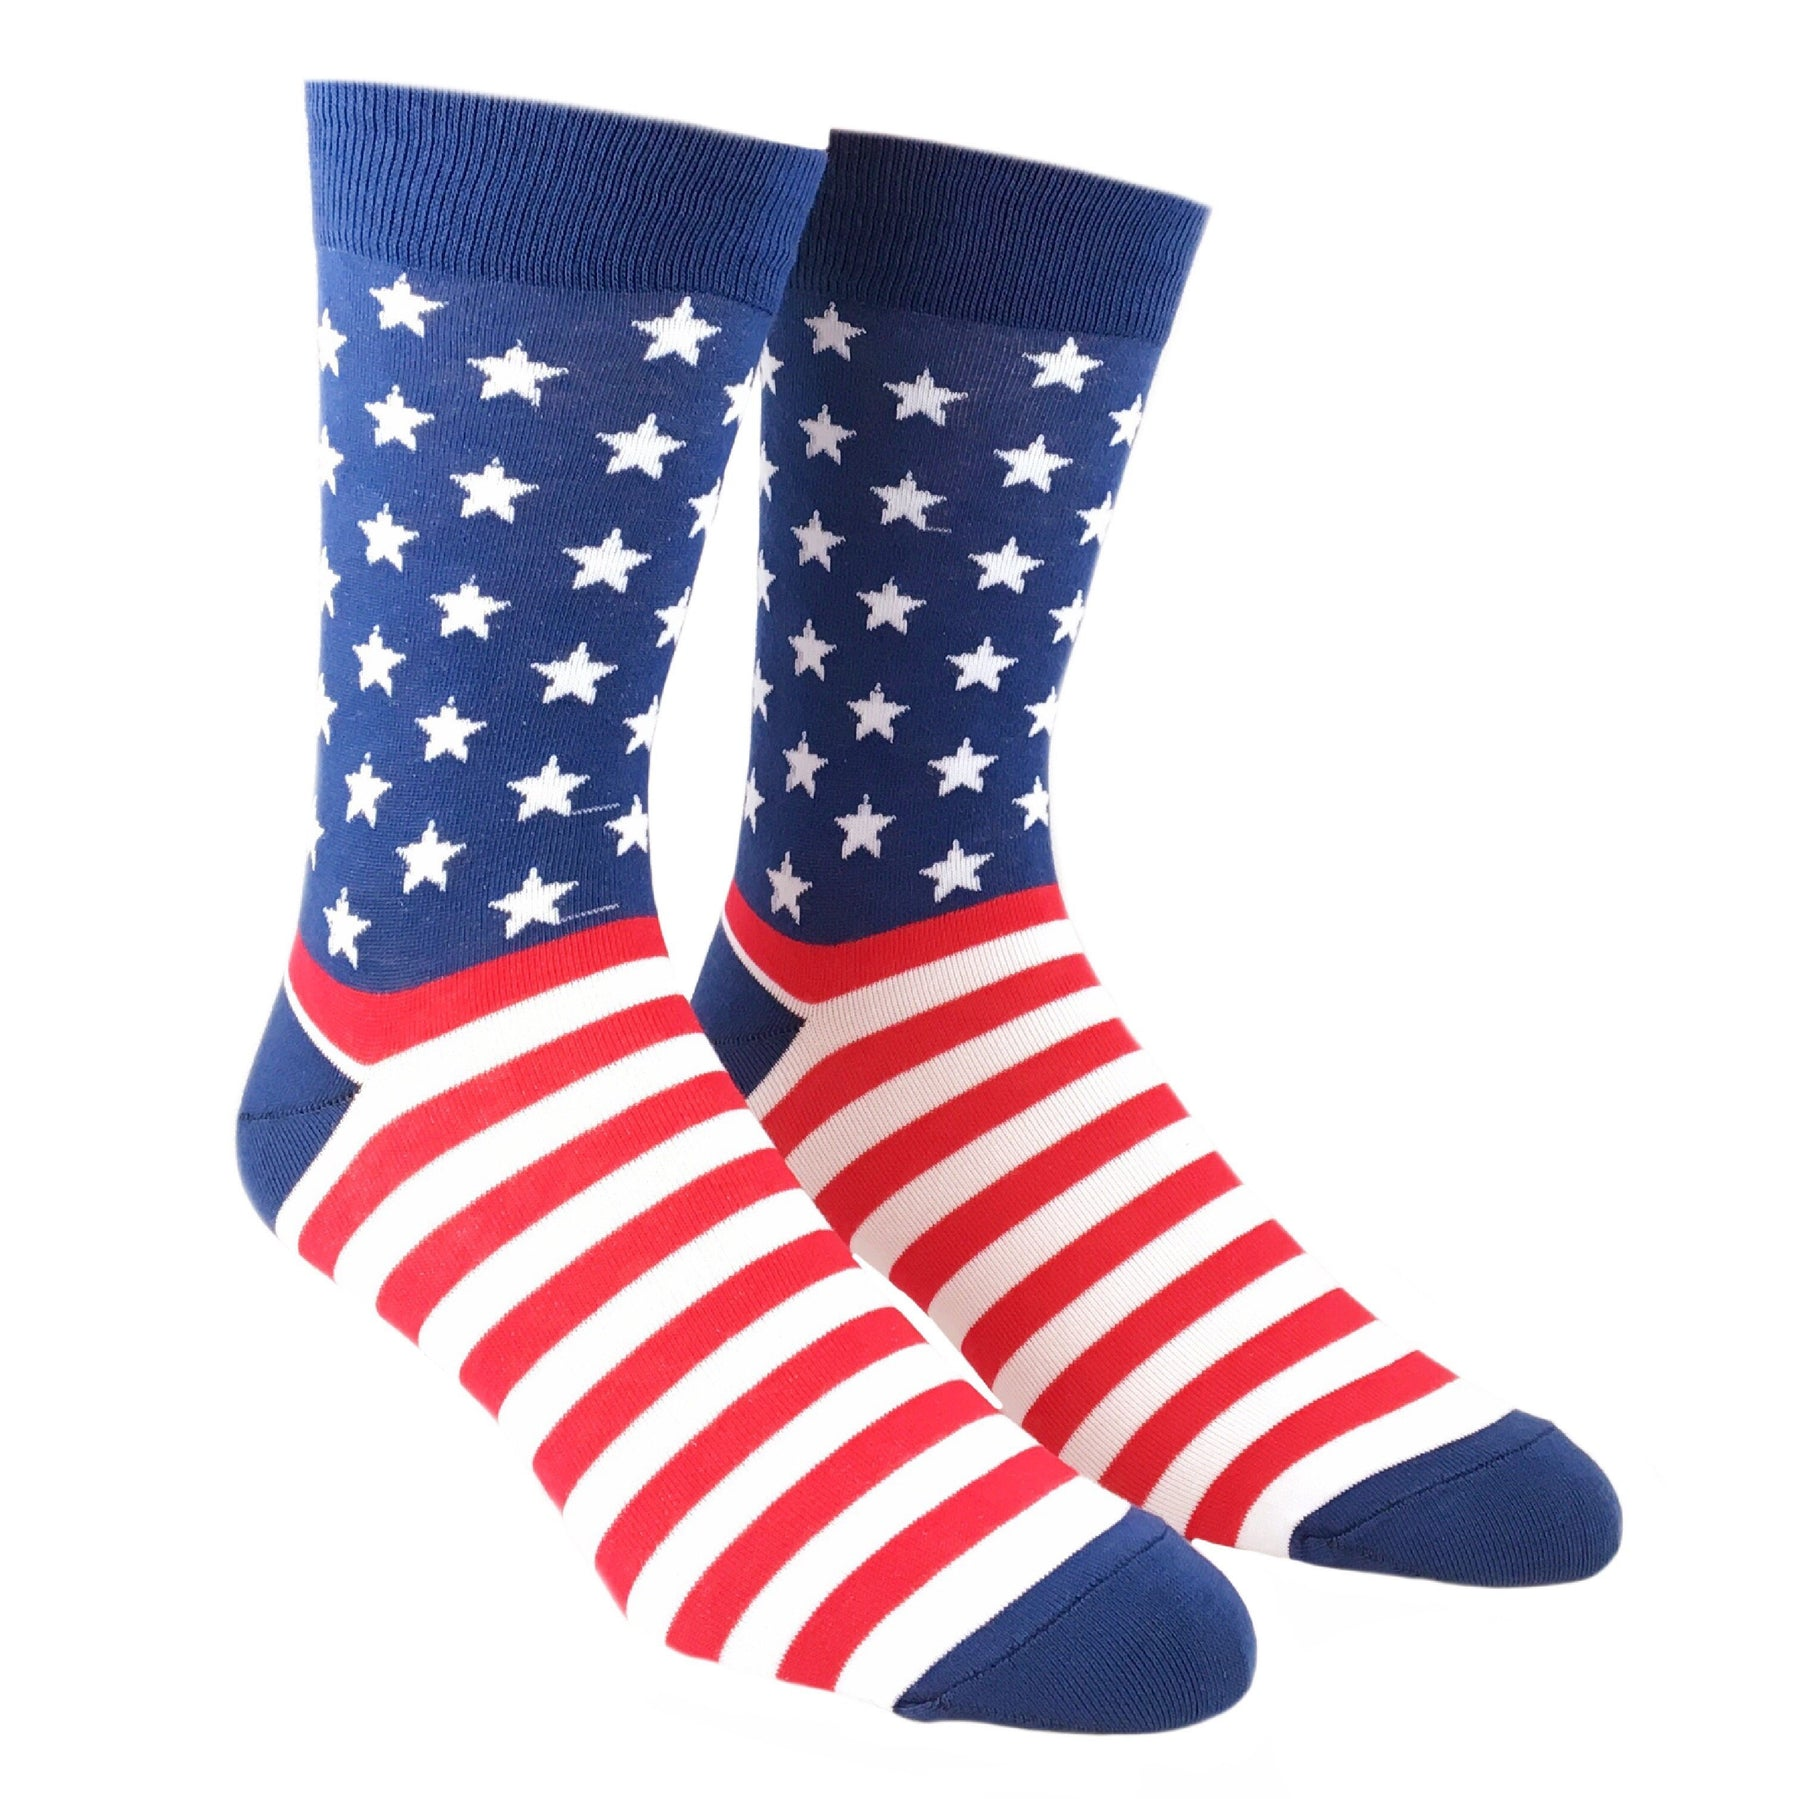 American Flag Socks and Patriotic Socks